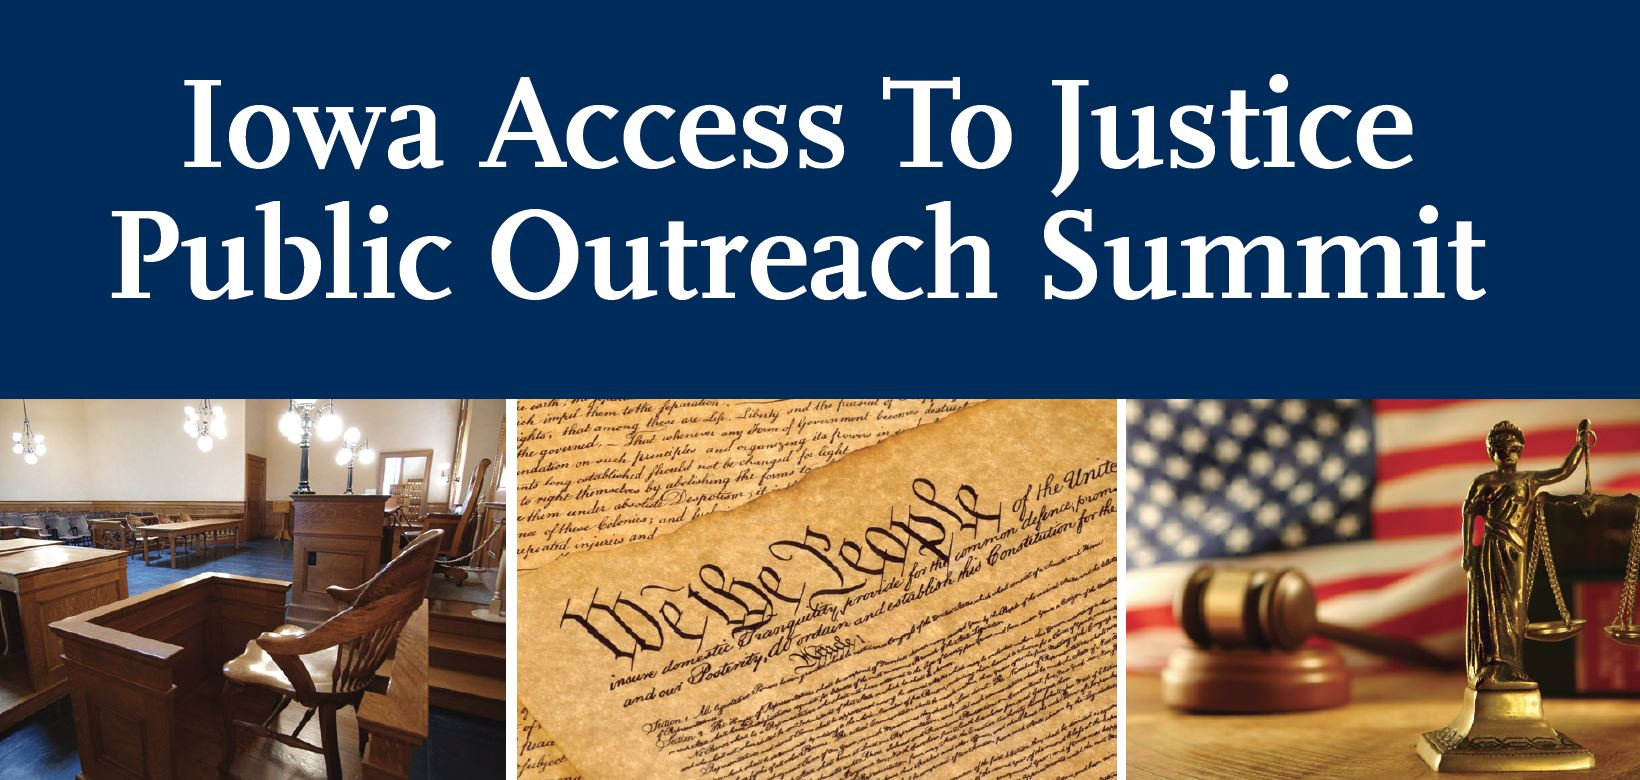 access to justice Access to justice is perhaps the most essential aspect of judiciary systems worldwide without the ability to physically access courthouses, understand court proceedings, or obtain legal representation, other efforts to reform and improve the courts matter little.